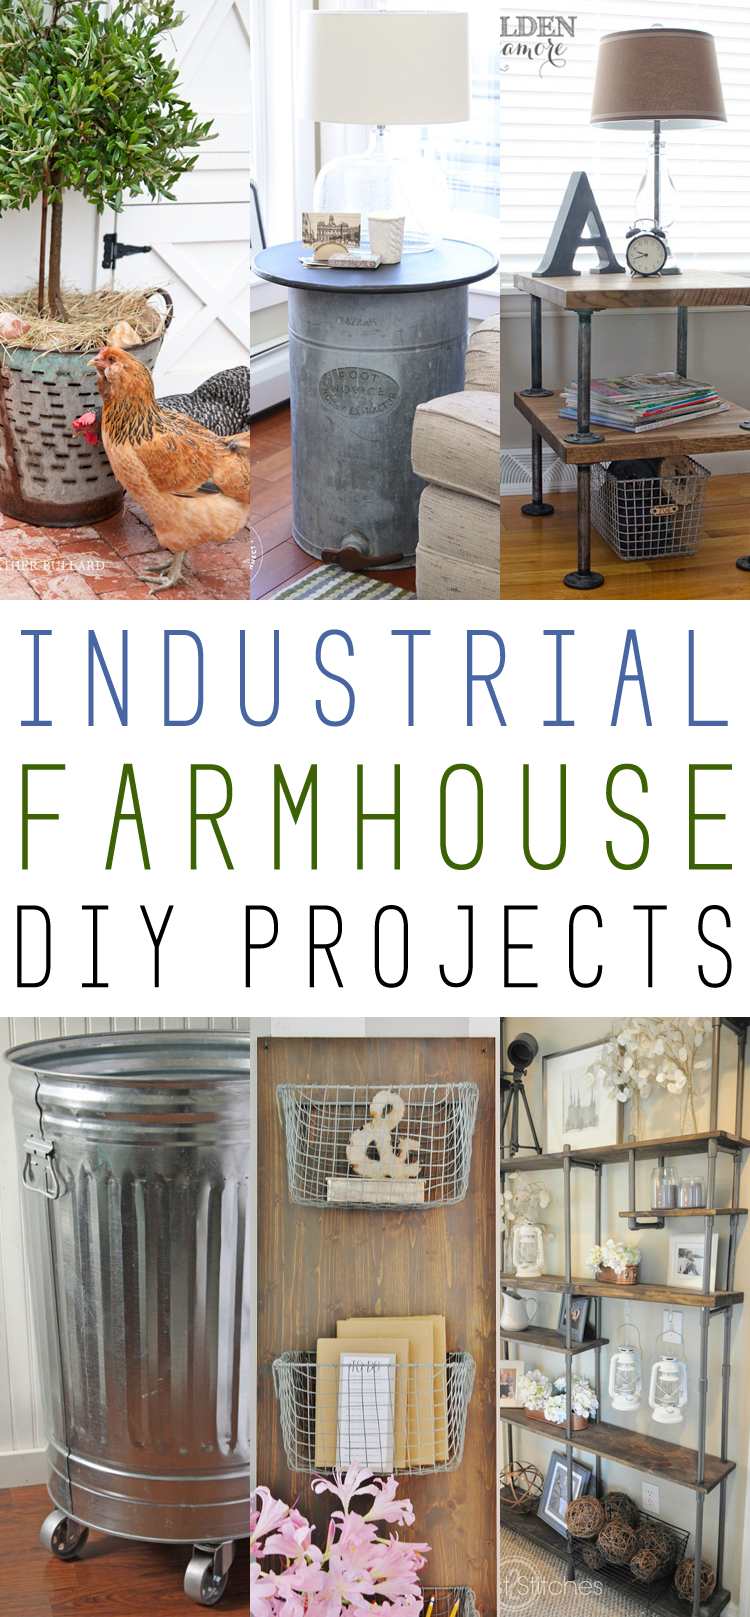 Farmhouse fridays industrial farmhouse diy projects for Decoracion hogar valencia